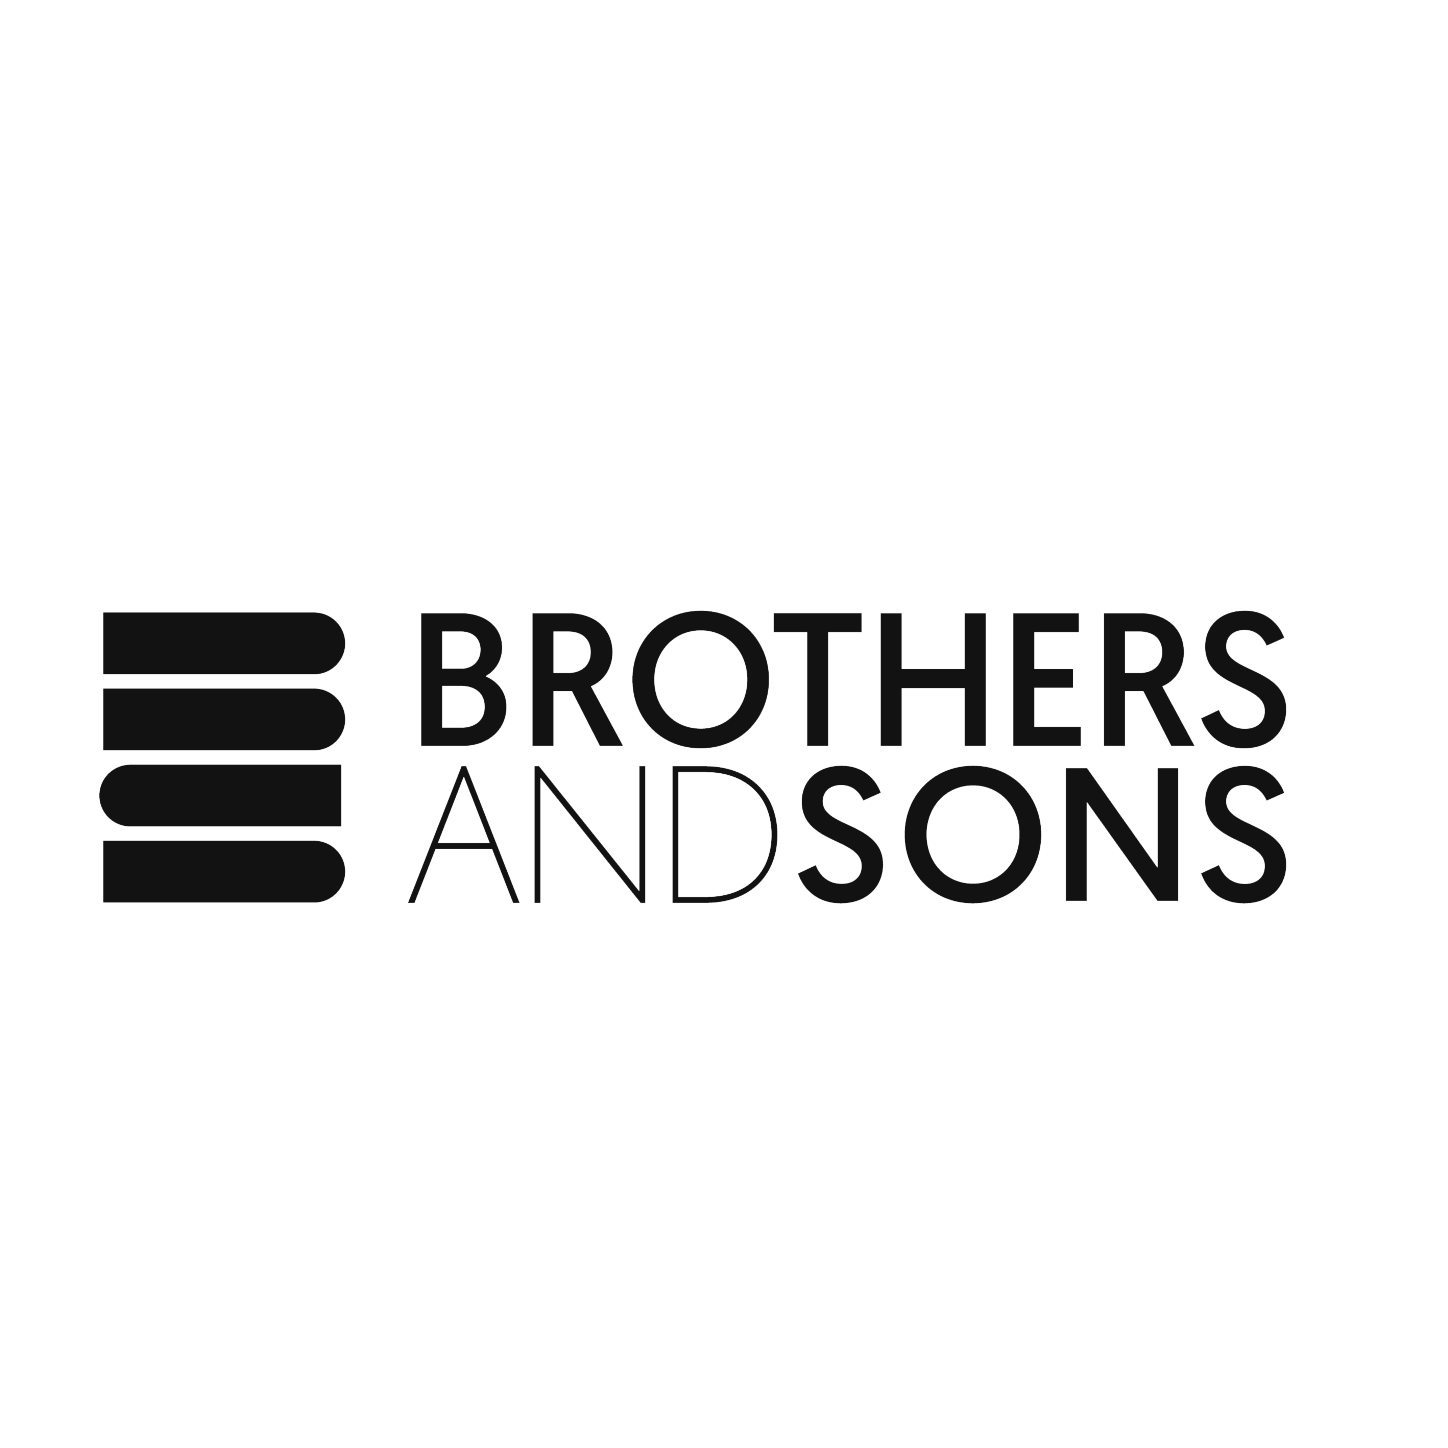 BrothersandSons en Office Support Benelux